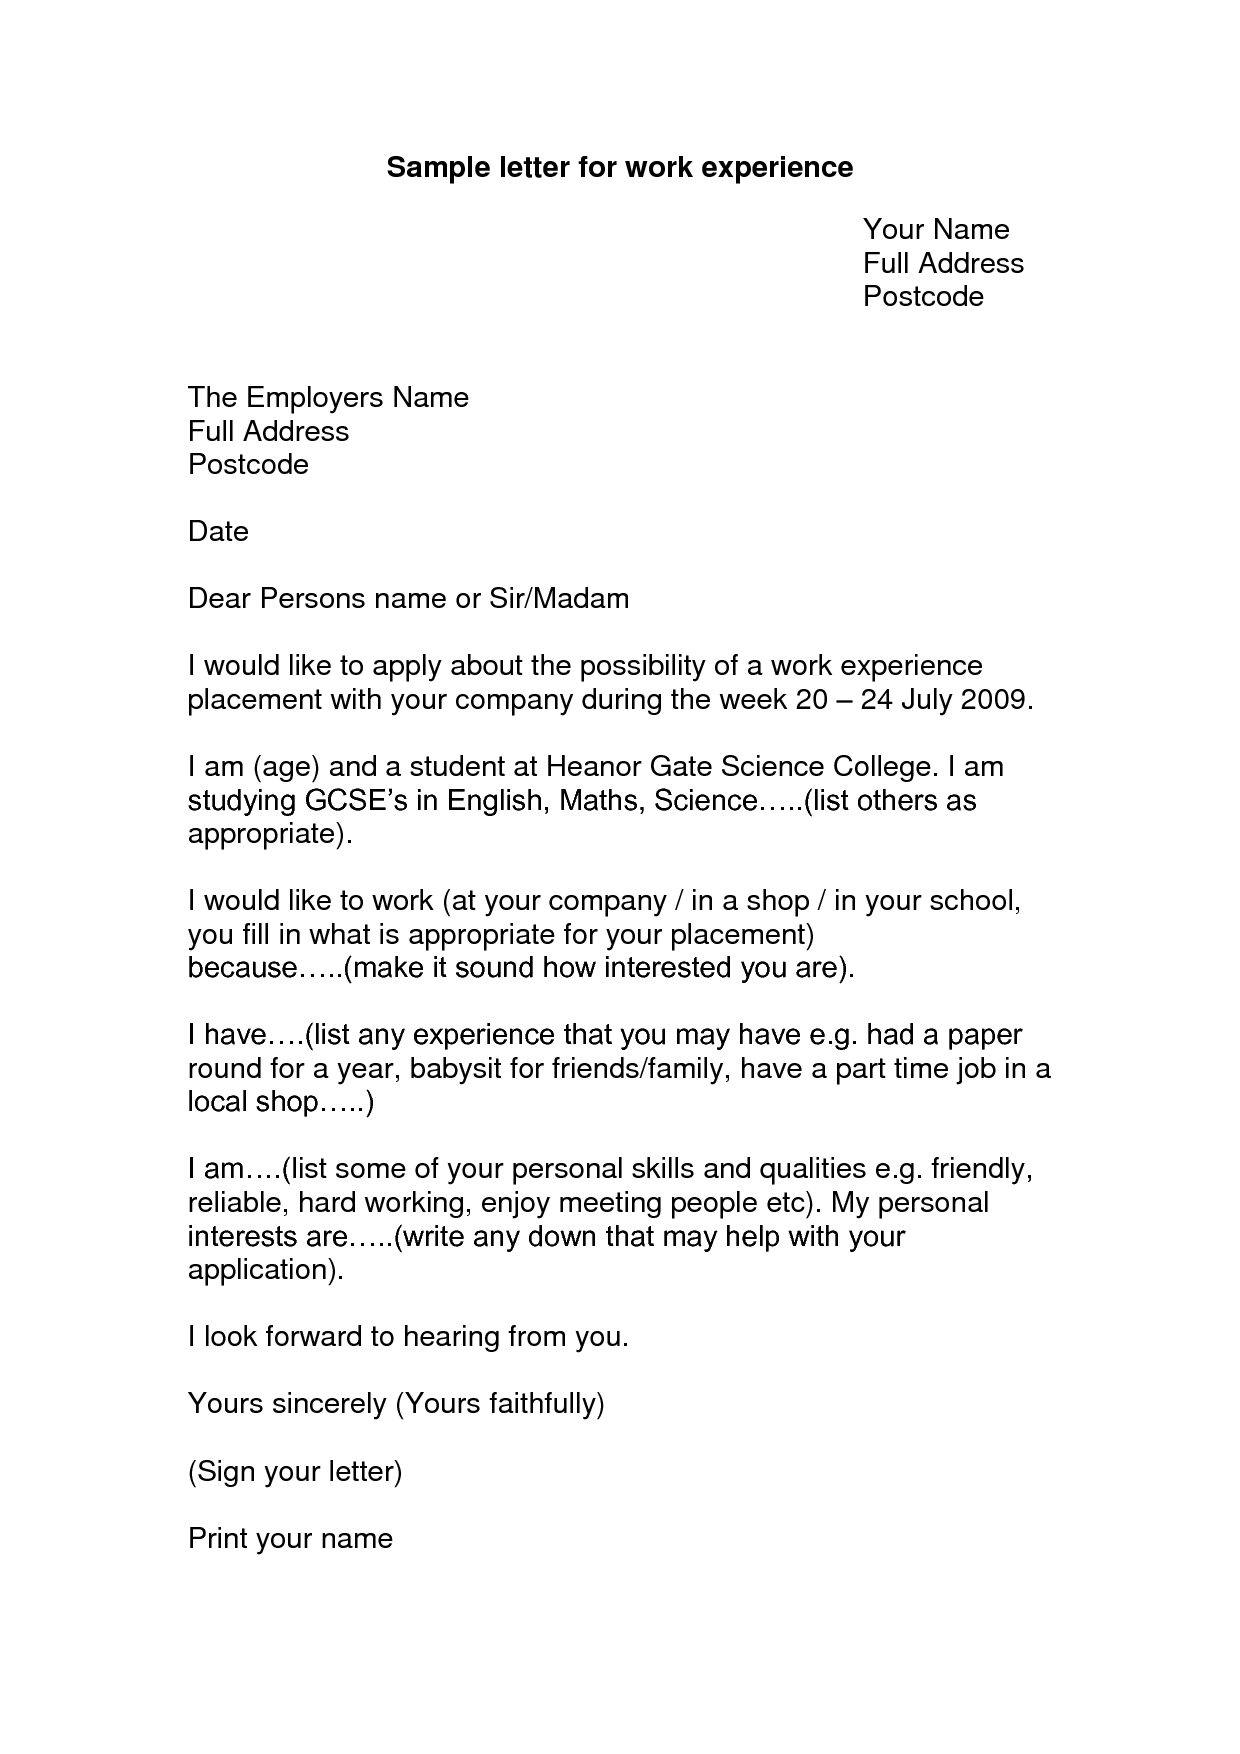 work experience letter example  Google Search  Looking